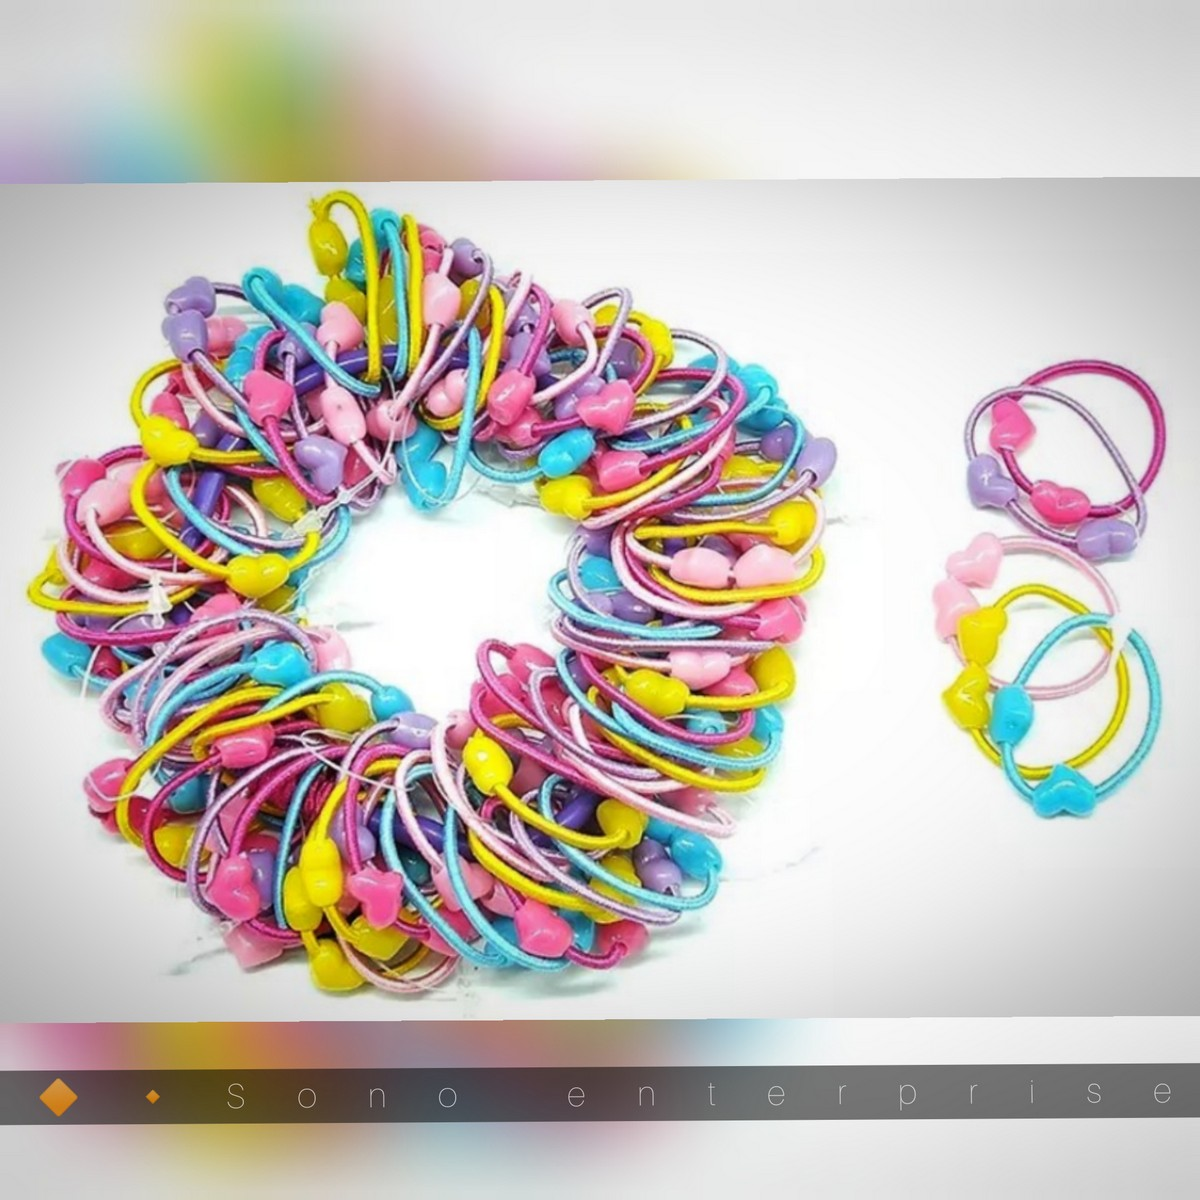 20 Pcs Girl Mini Hair Band Multi Colors Girl's Elastic Hair Ties Soft Rubber Bands Hair Poni Hair Accessories for Baby Girls Infants Toddlers Kids